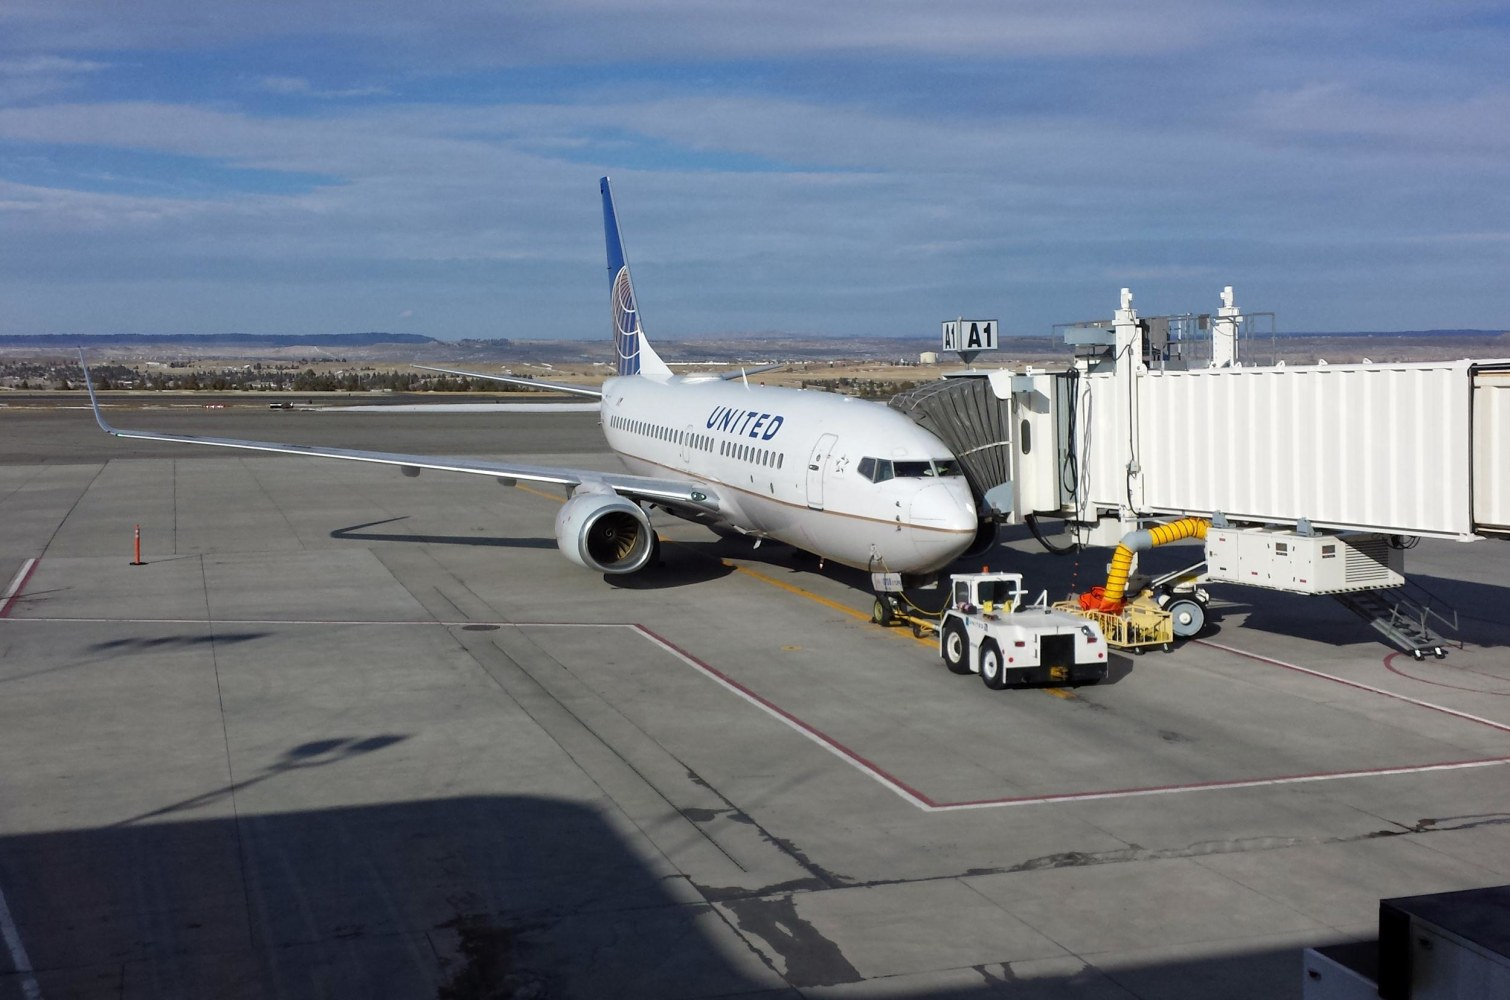 A United plane at the Billings